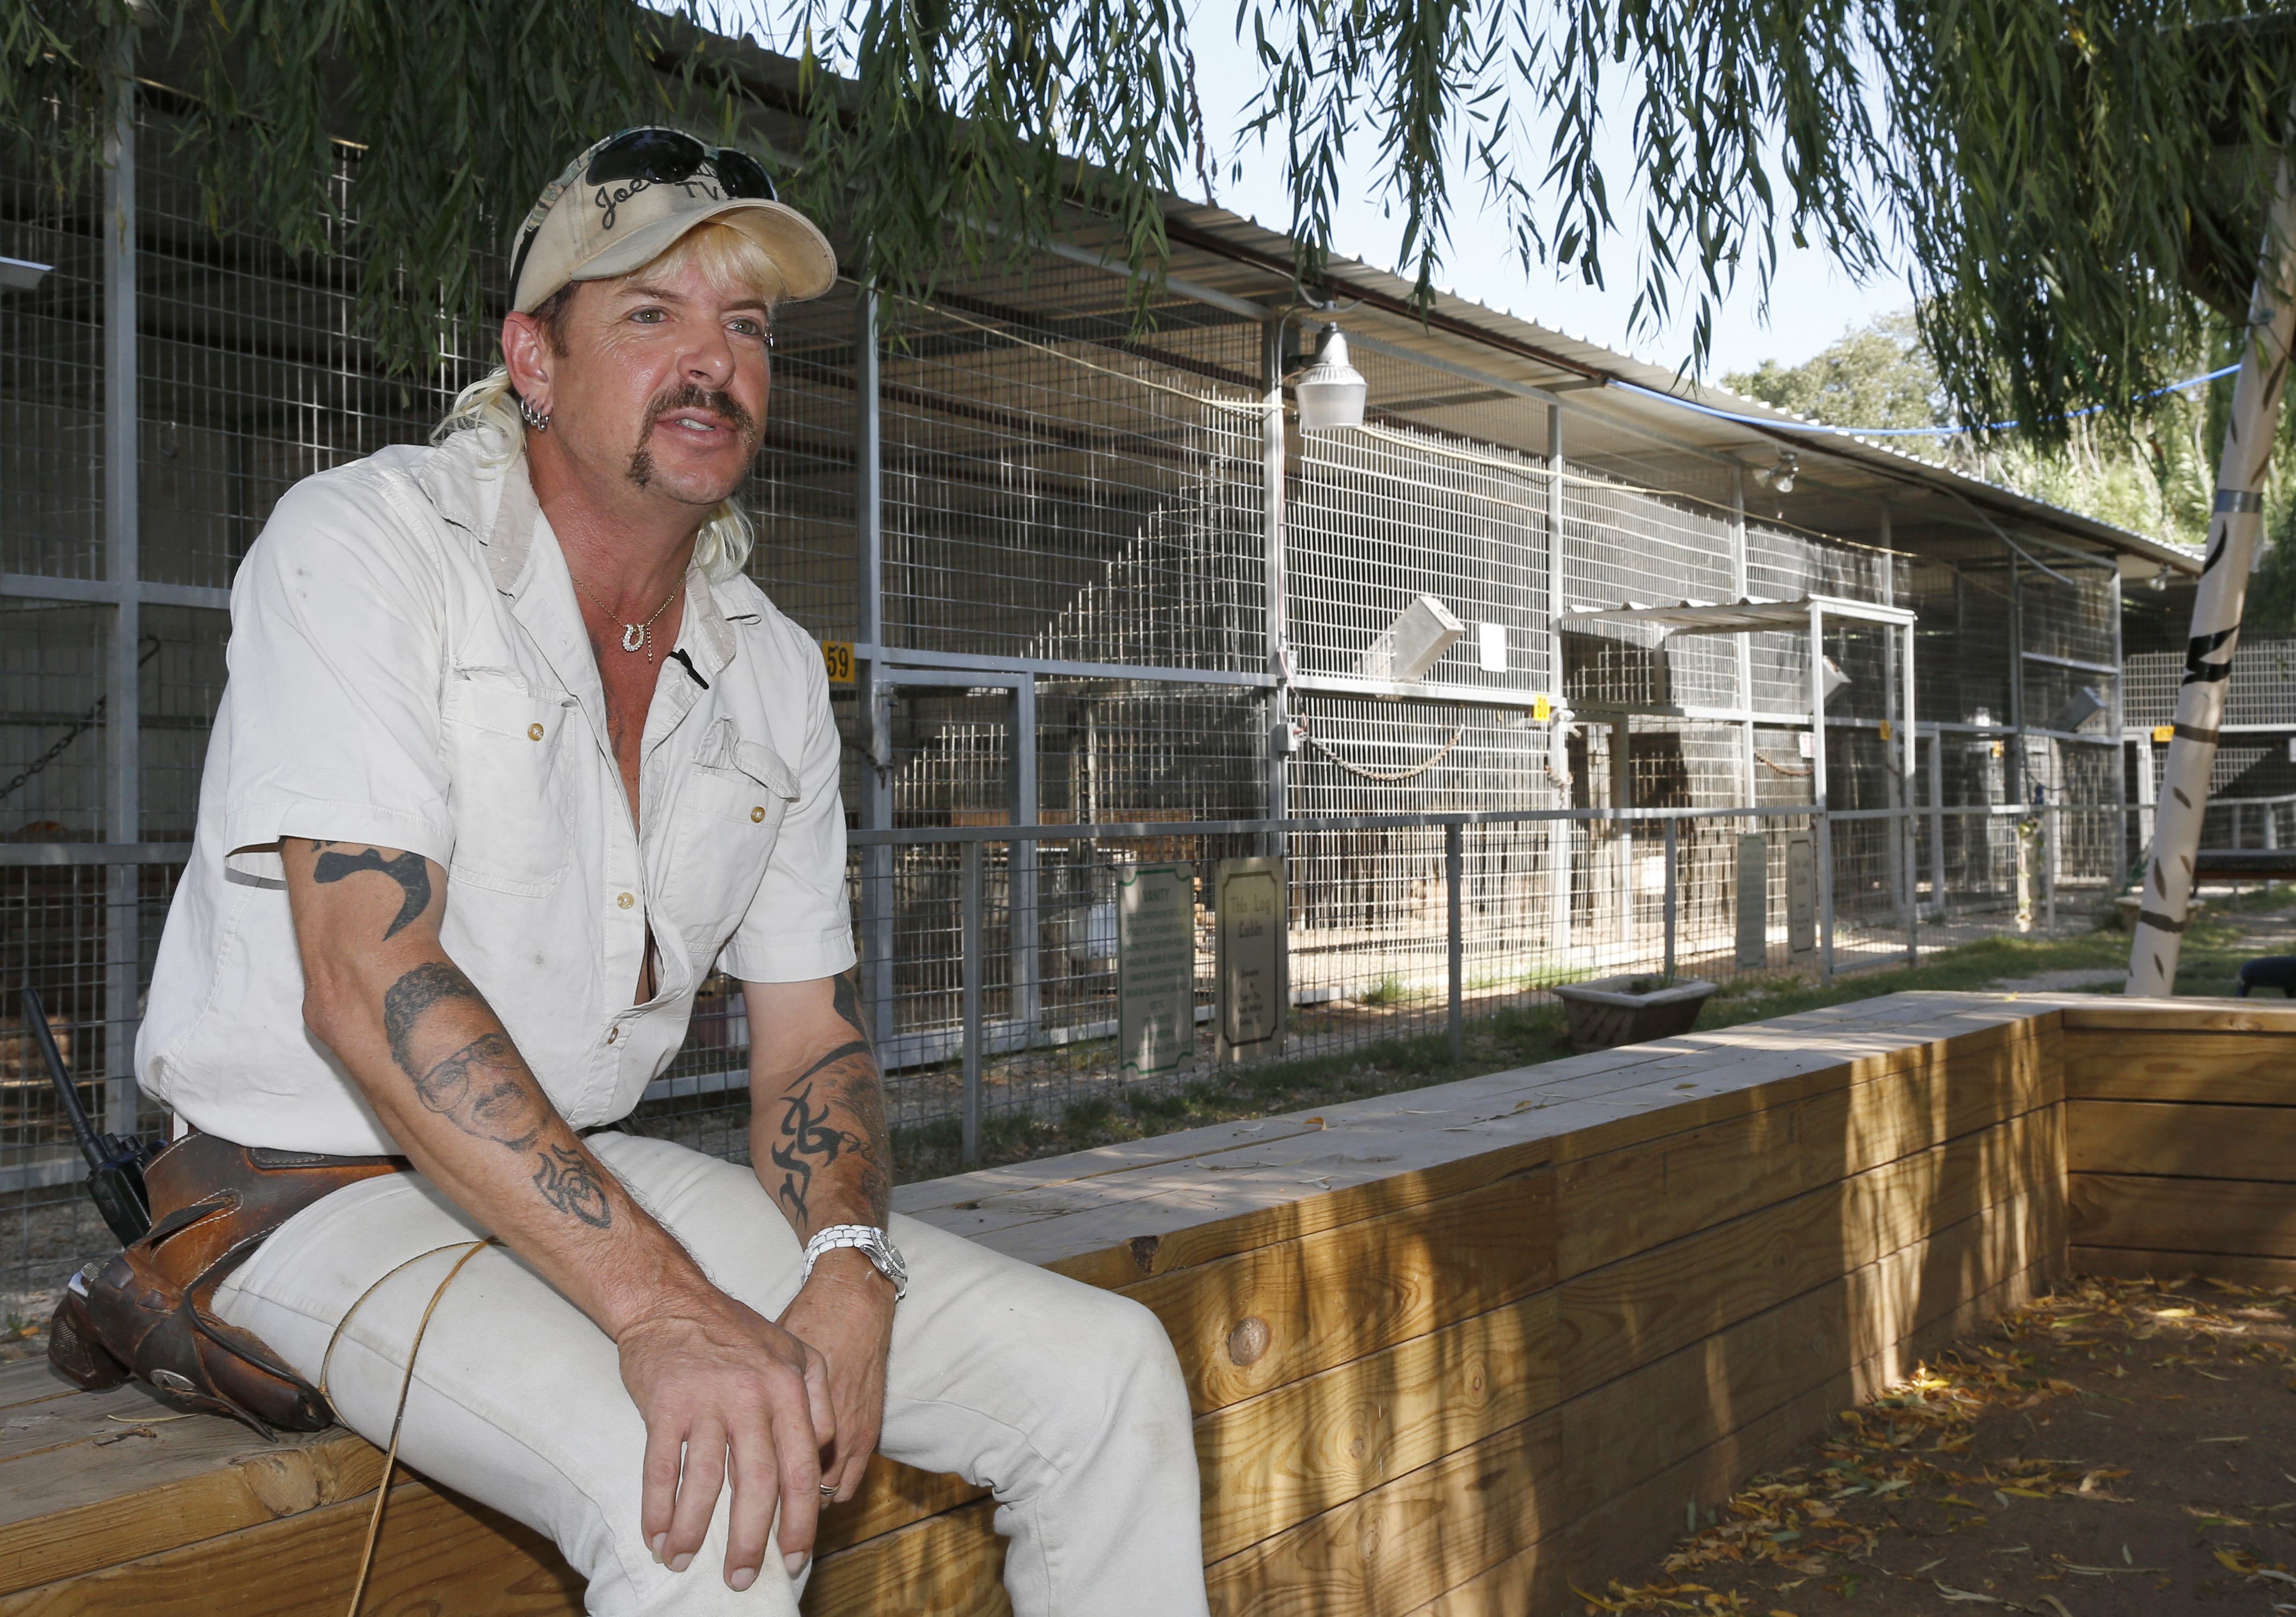 , Joe Exotic Says He Was 'Too Gay' to Get a Pardon From Trump, Saubio Making Wealth